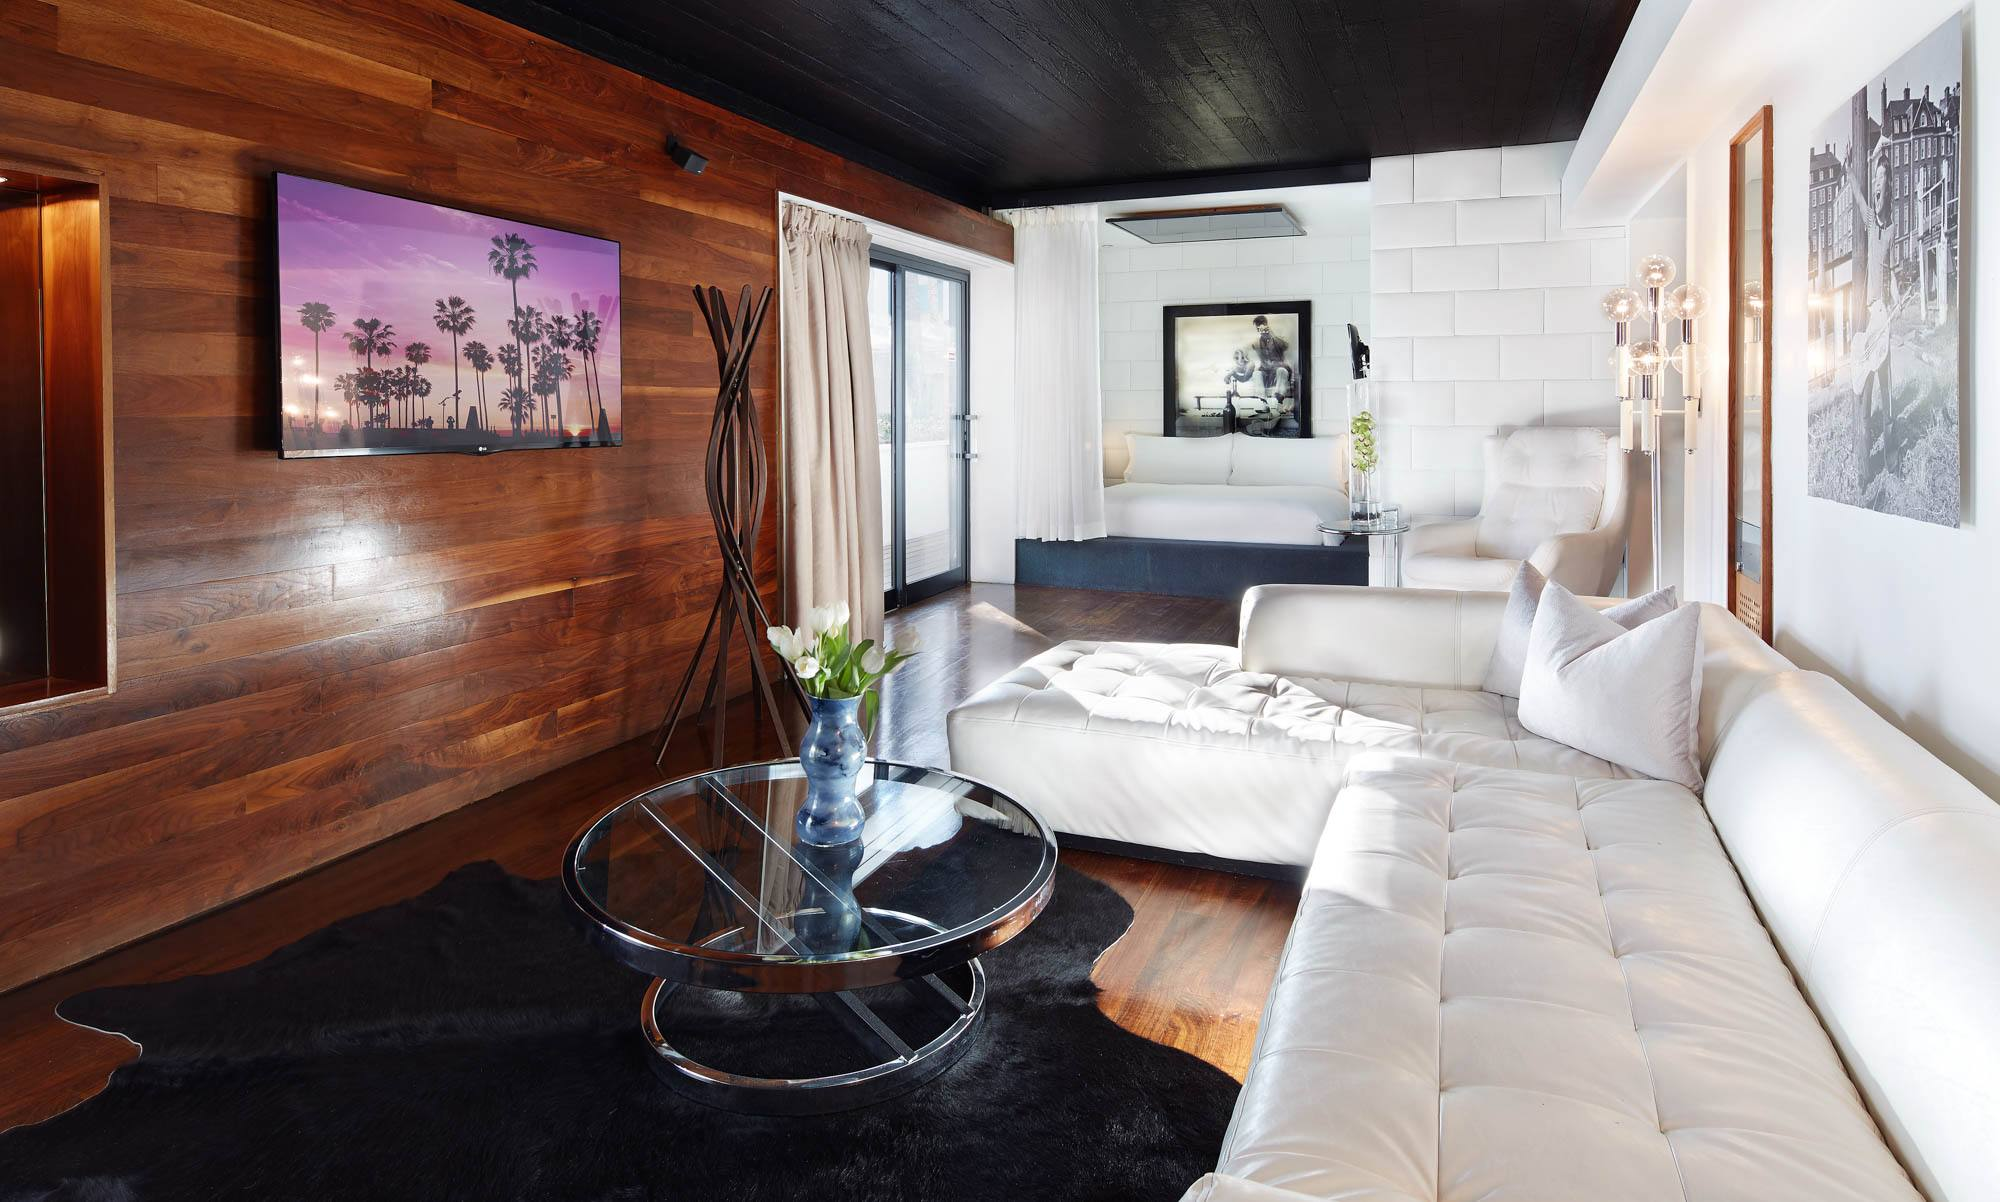 Interior photo of the Hollywood Roosevelt's Marilyn Monroe Suite with wood walls and white couch